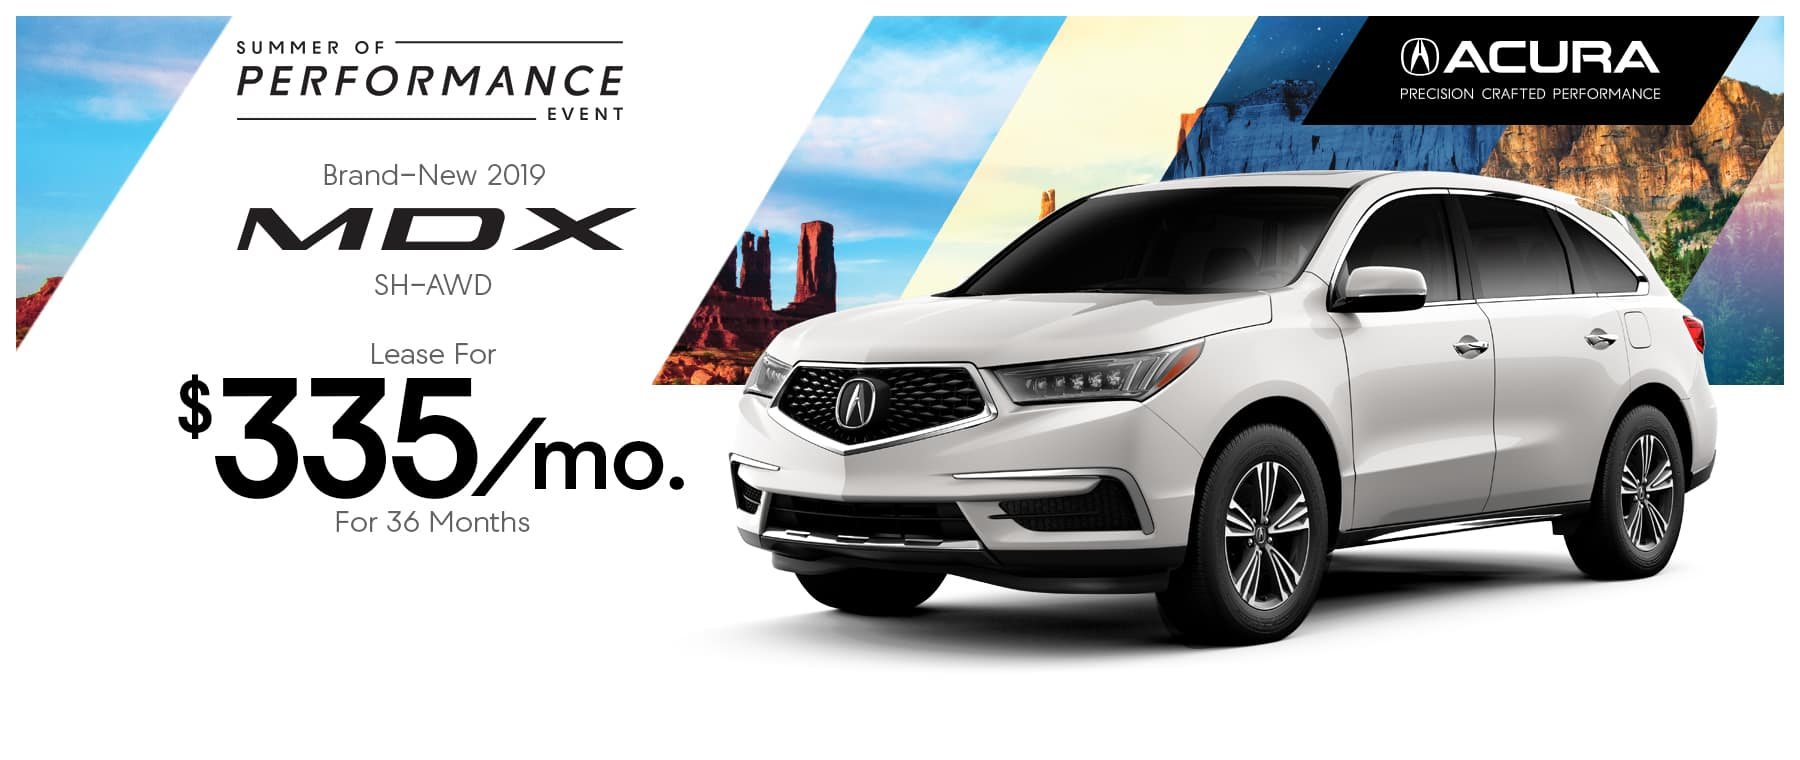 Acura Mdx Lease >> Acura New And Used Car Dealer In Woodside Ny Paragon Acura